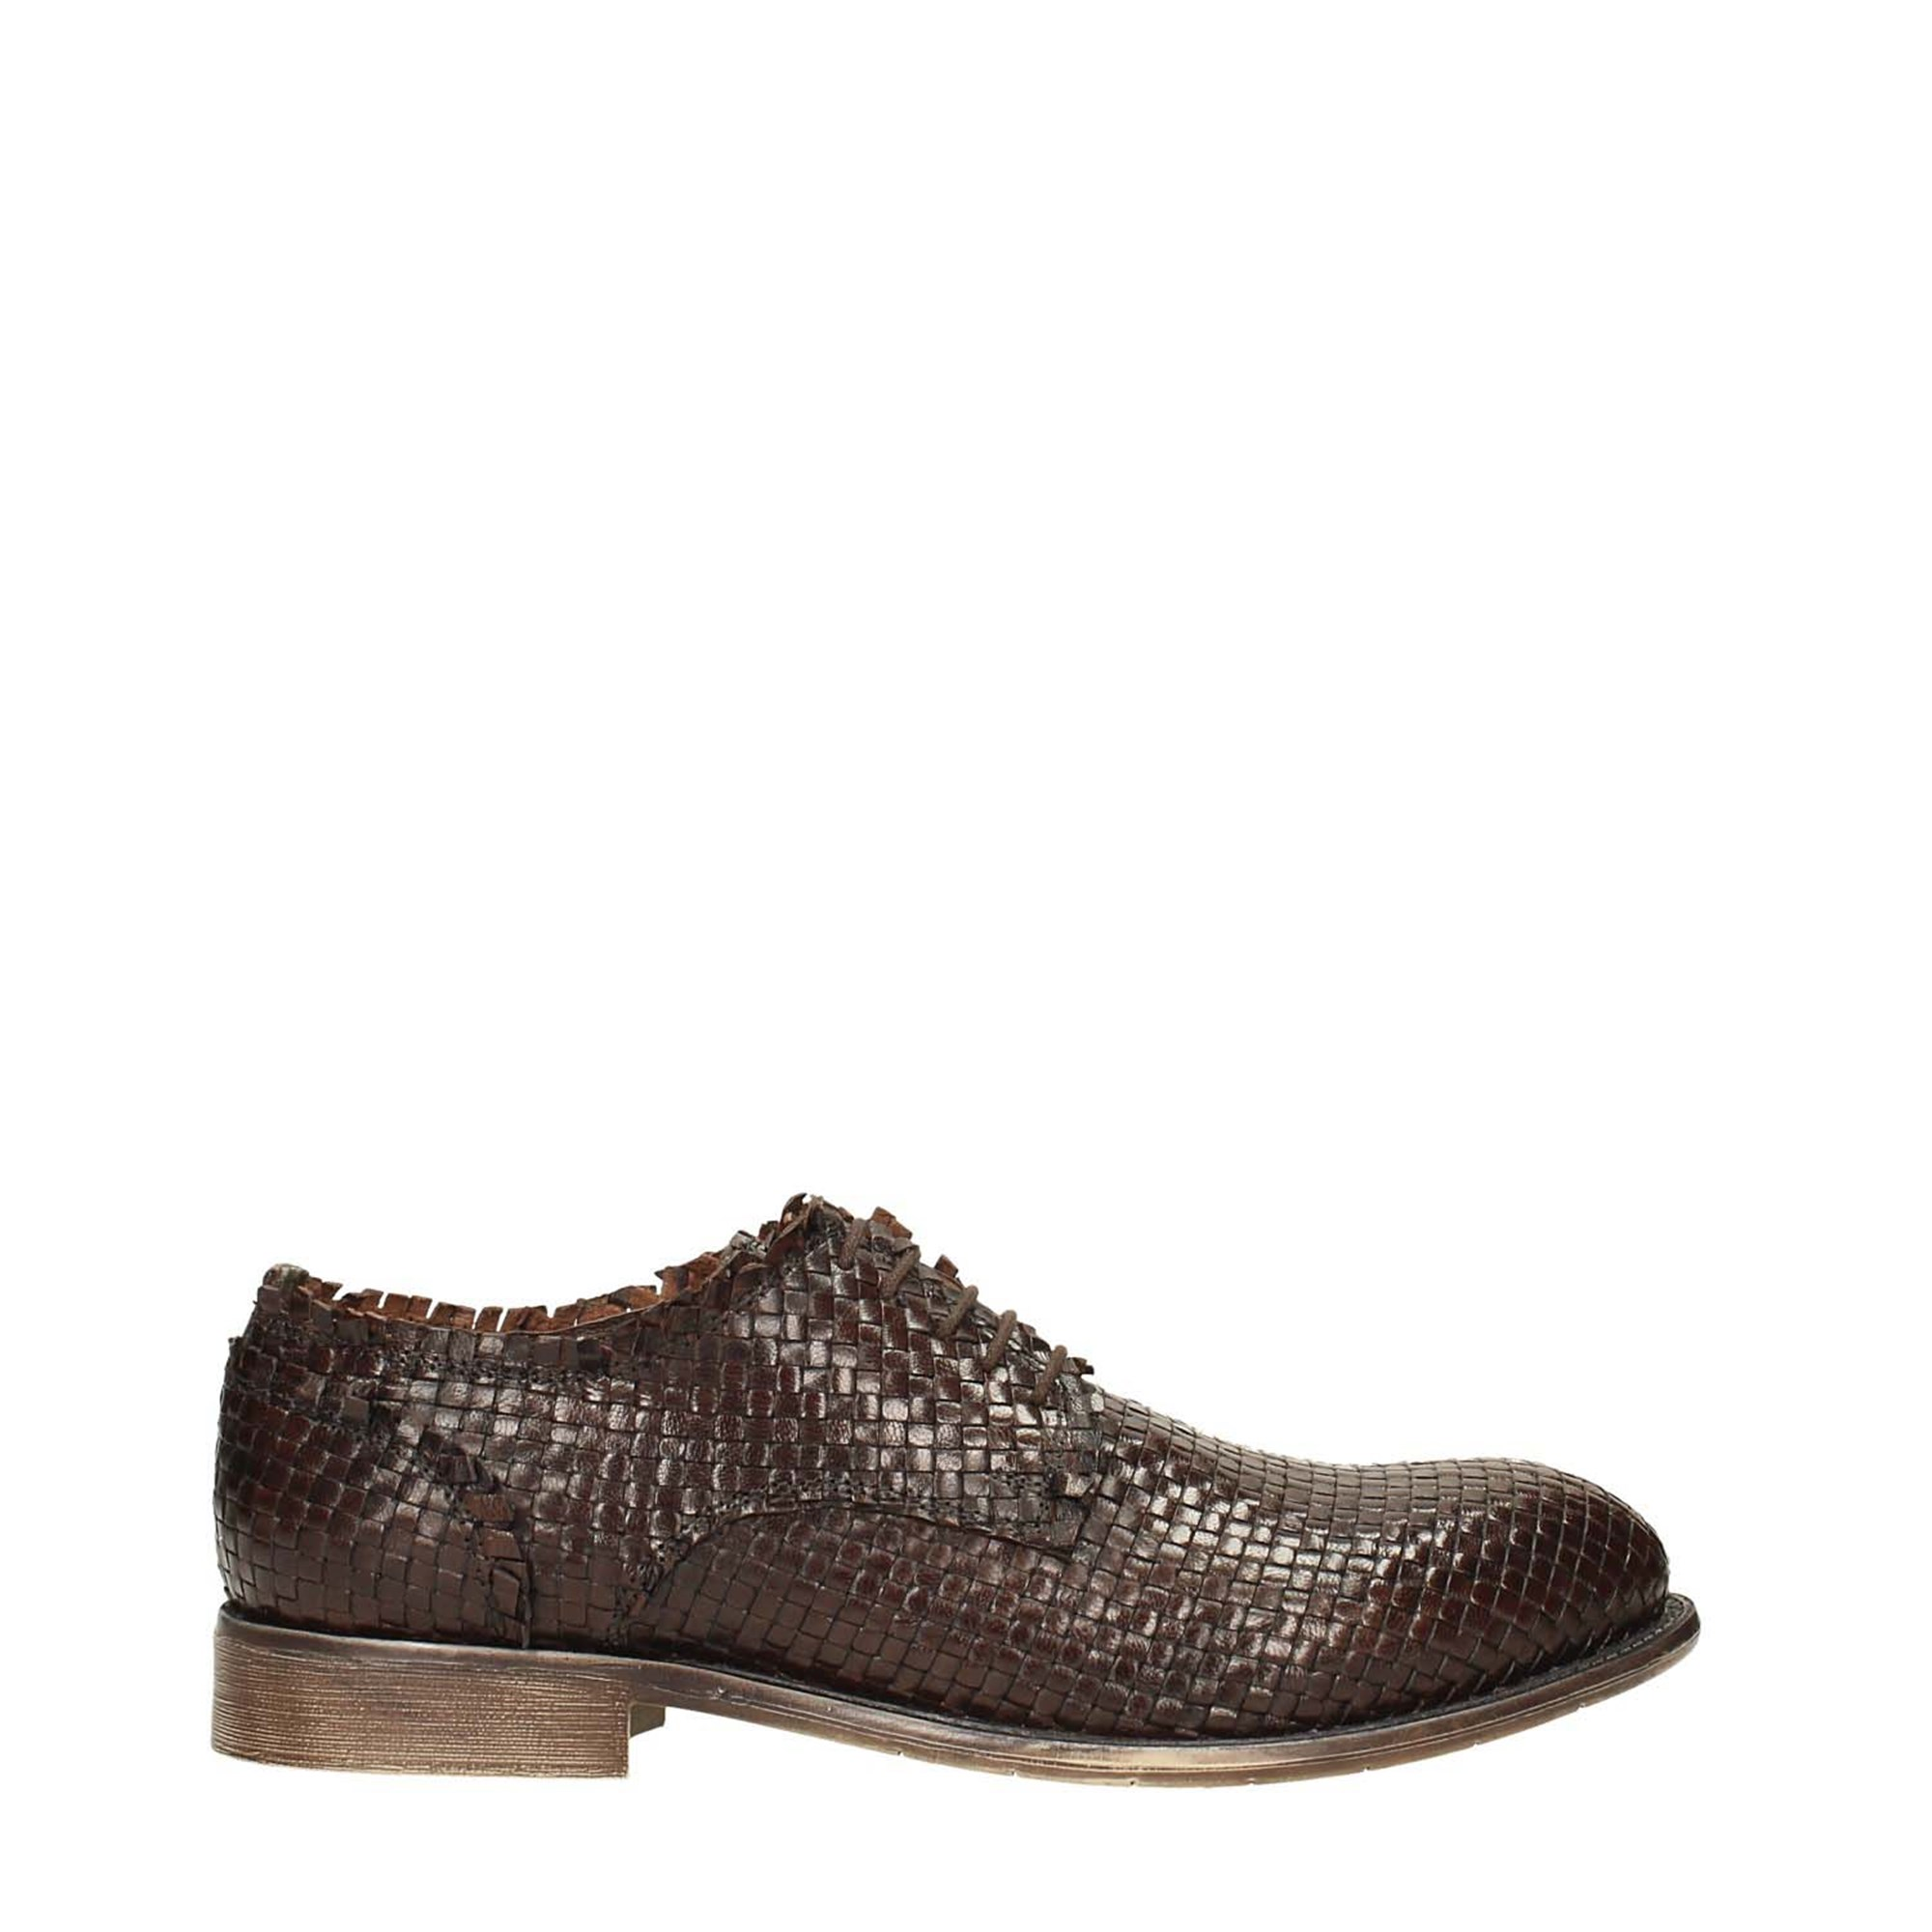 Tata Italia Shoes Man Derby VR-570-9